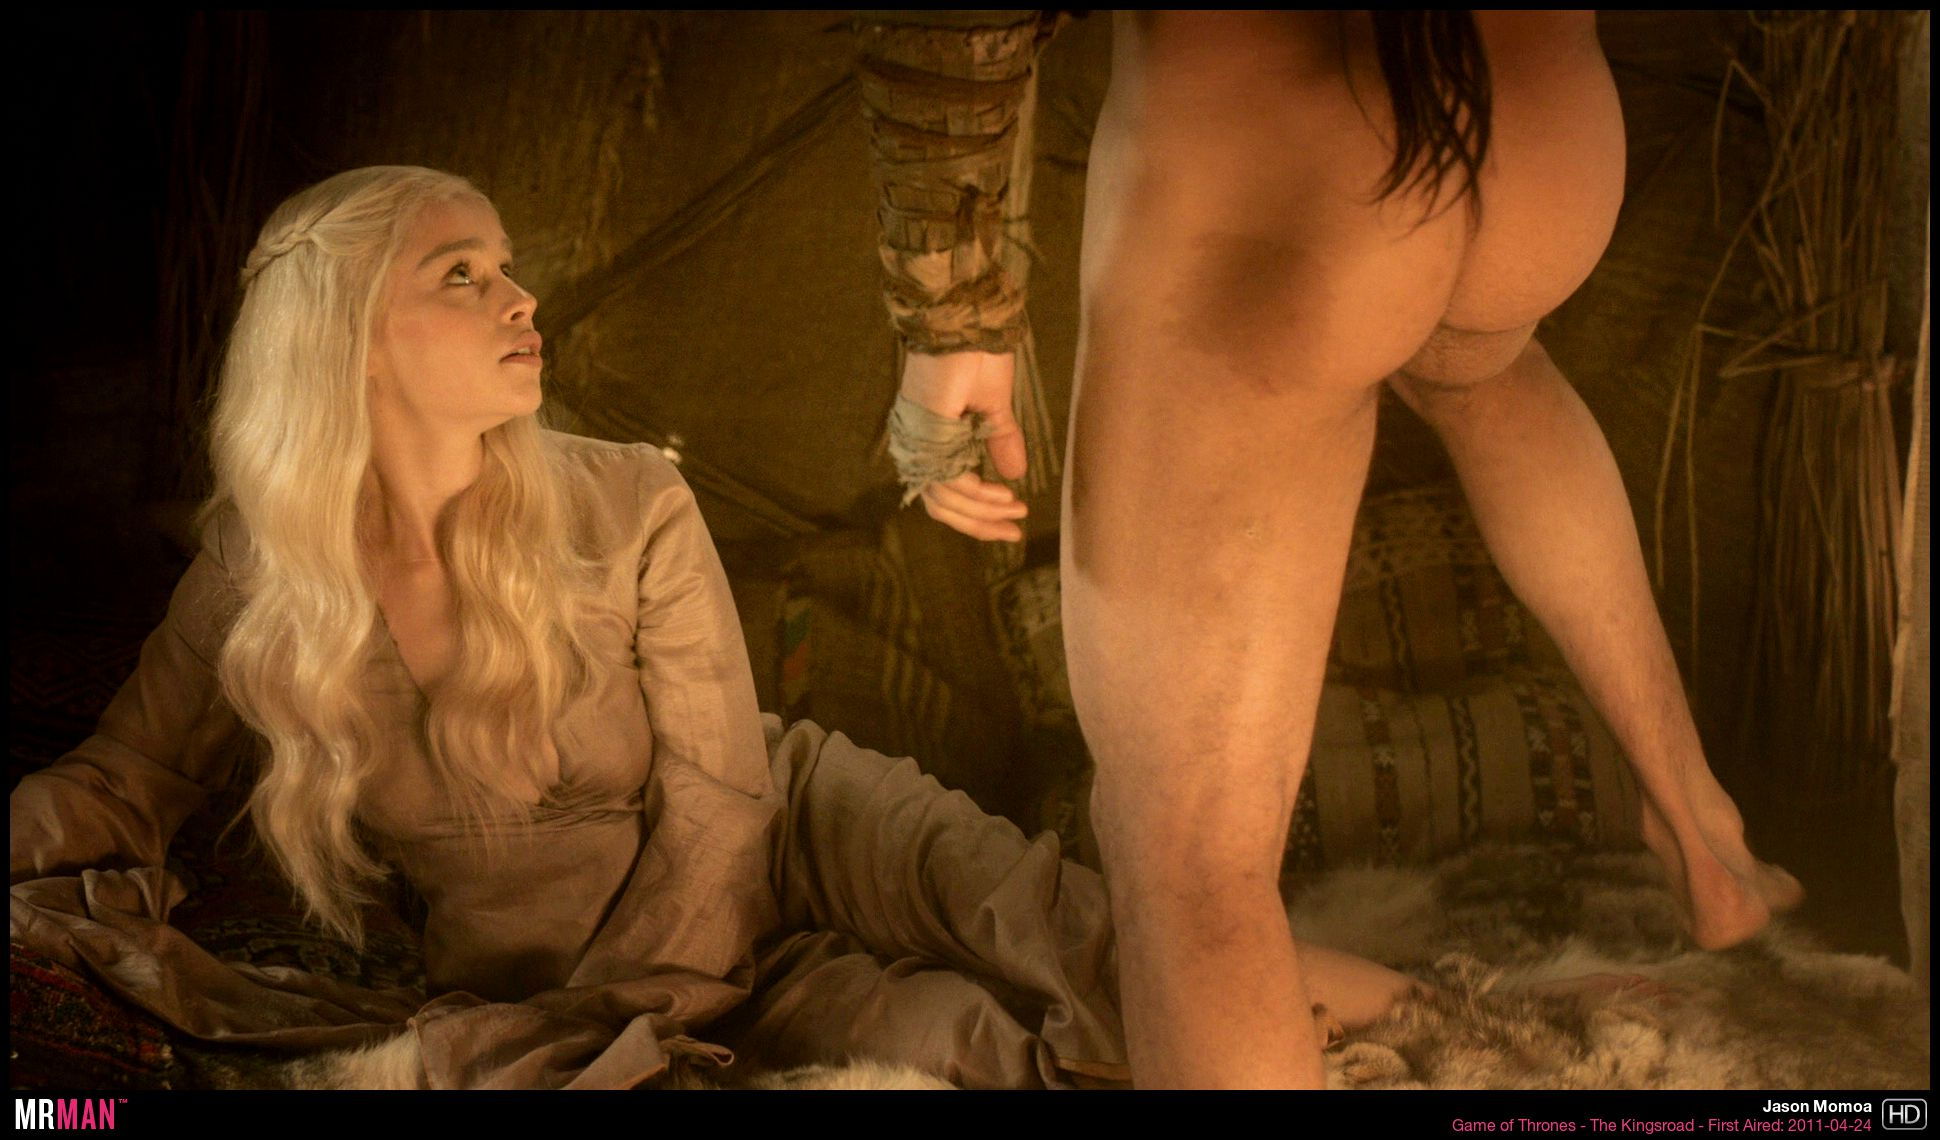 final game of thrones nude 2